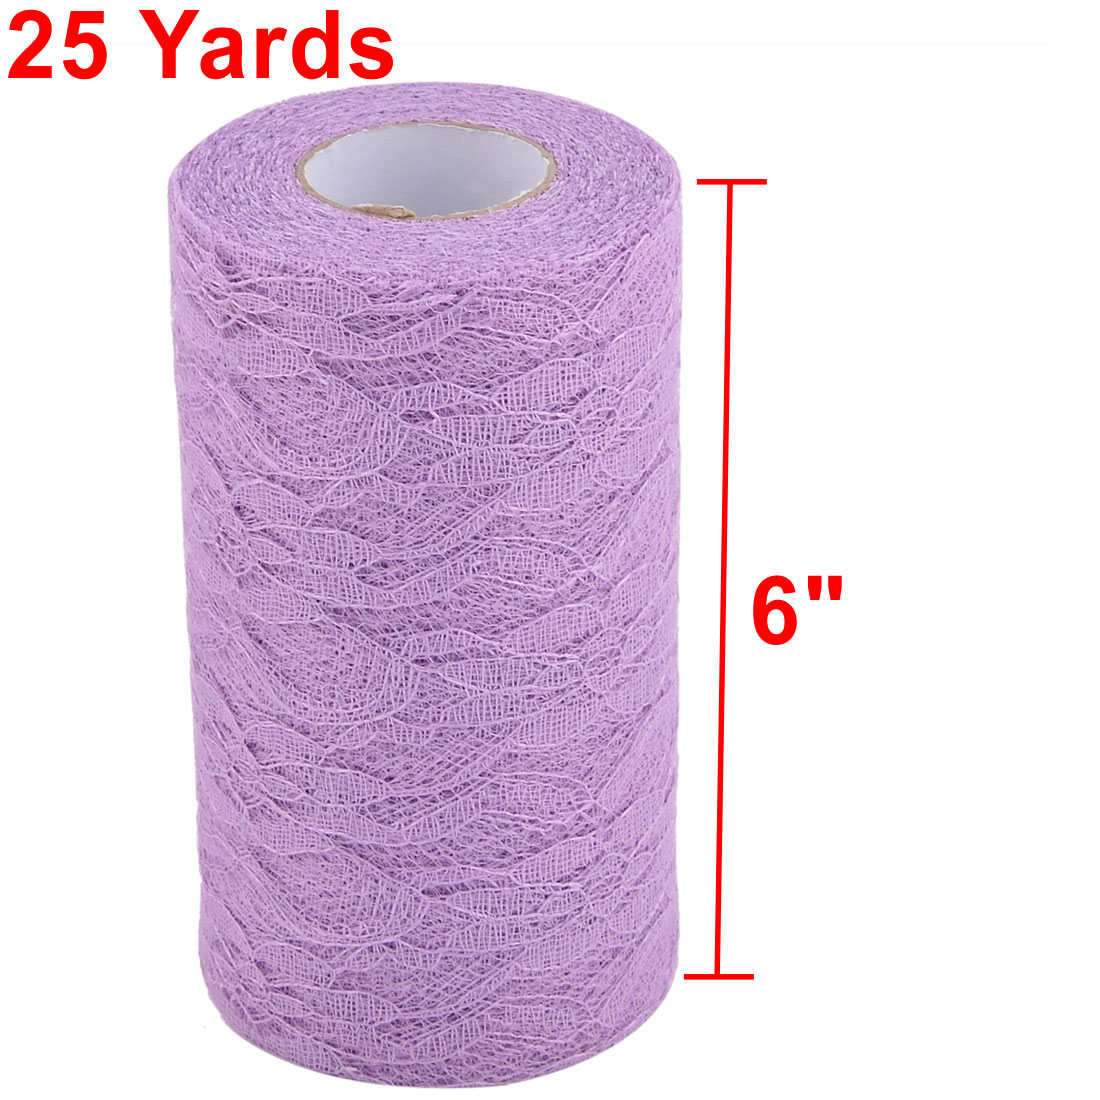 Party Lace Banquet Hall Decor Tulle Spool Roll Light Purple 6 Inch x 25 Yards - image 4 of 5